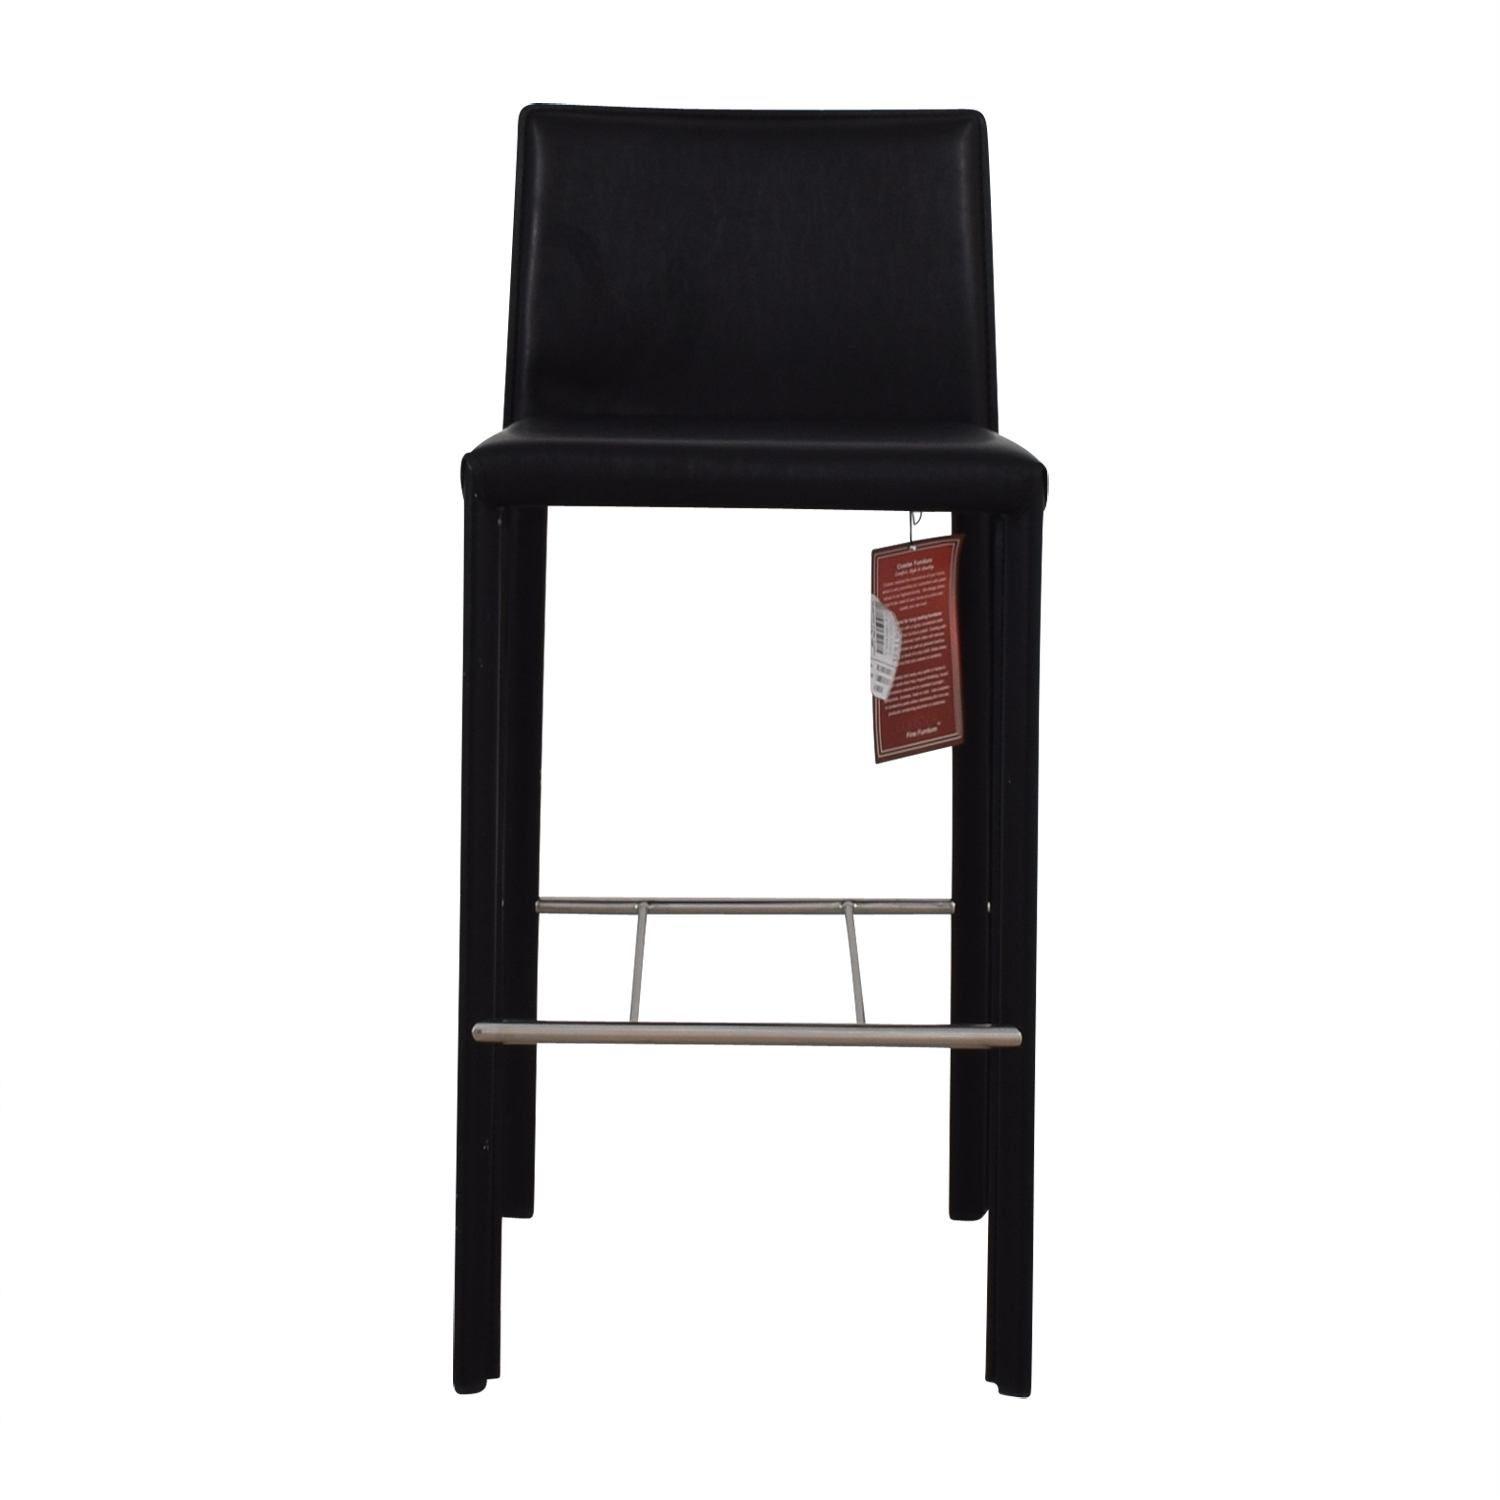 Coaster Coaster Modern Black Leatherette Bar Chair price